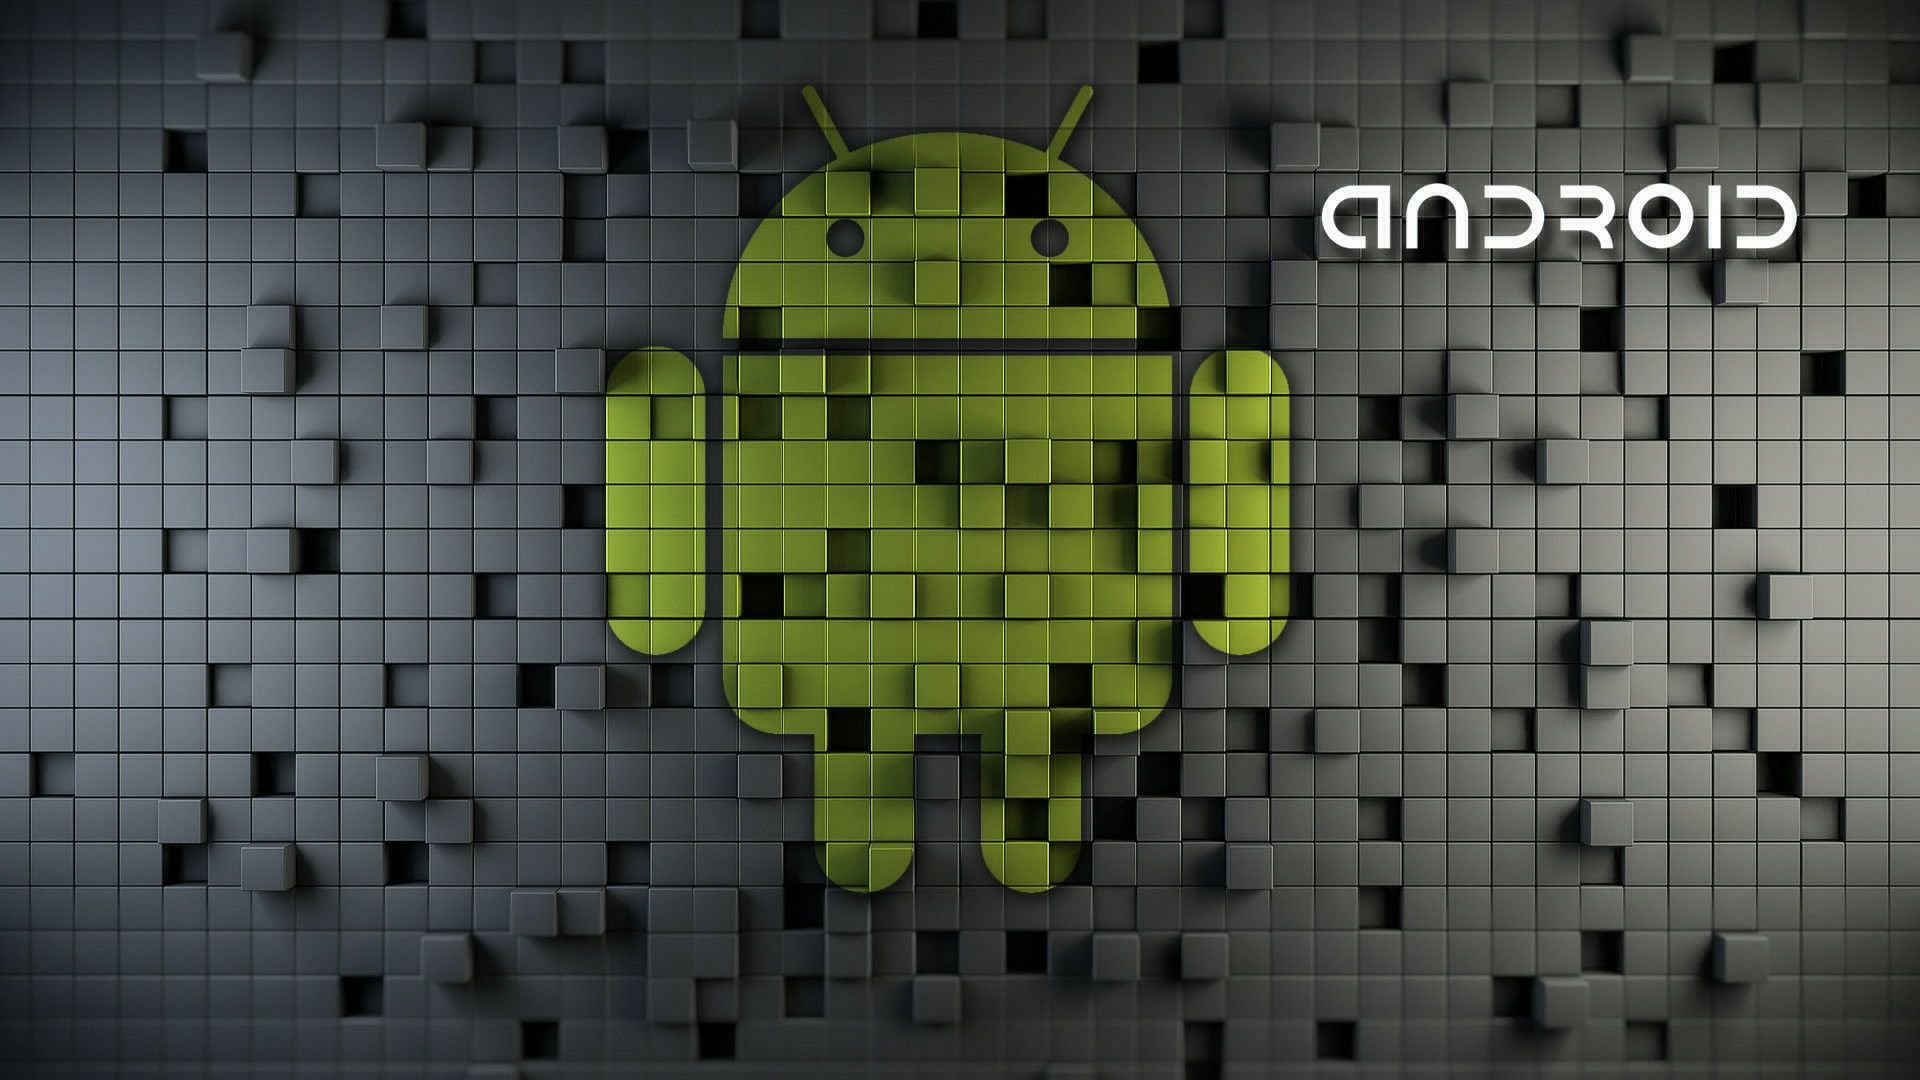 Wallpaper Backgrounds For Android